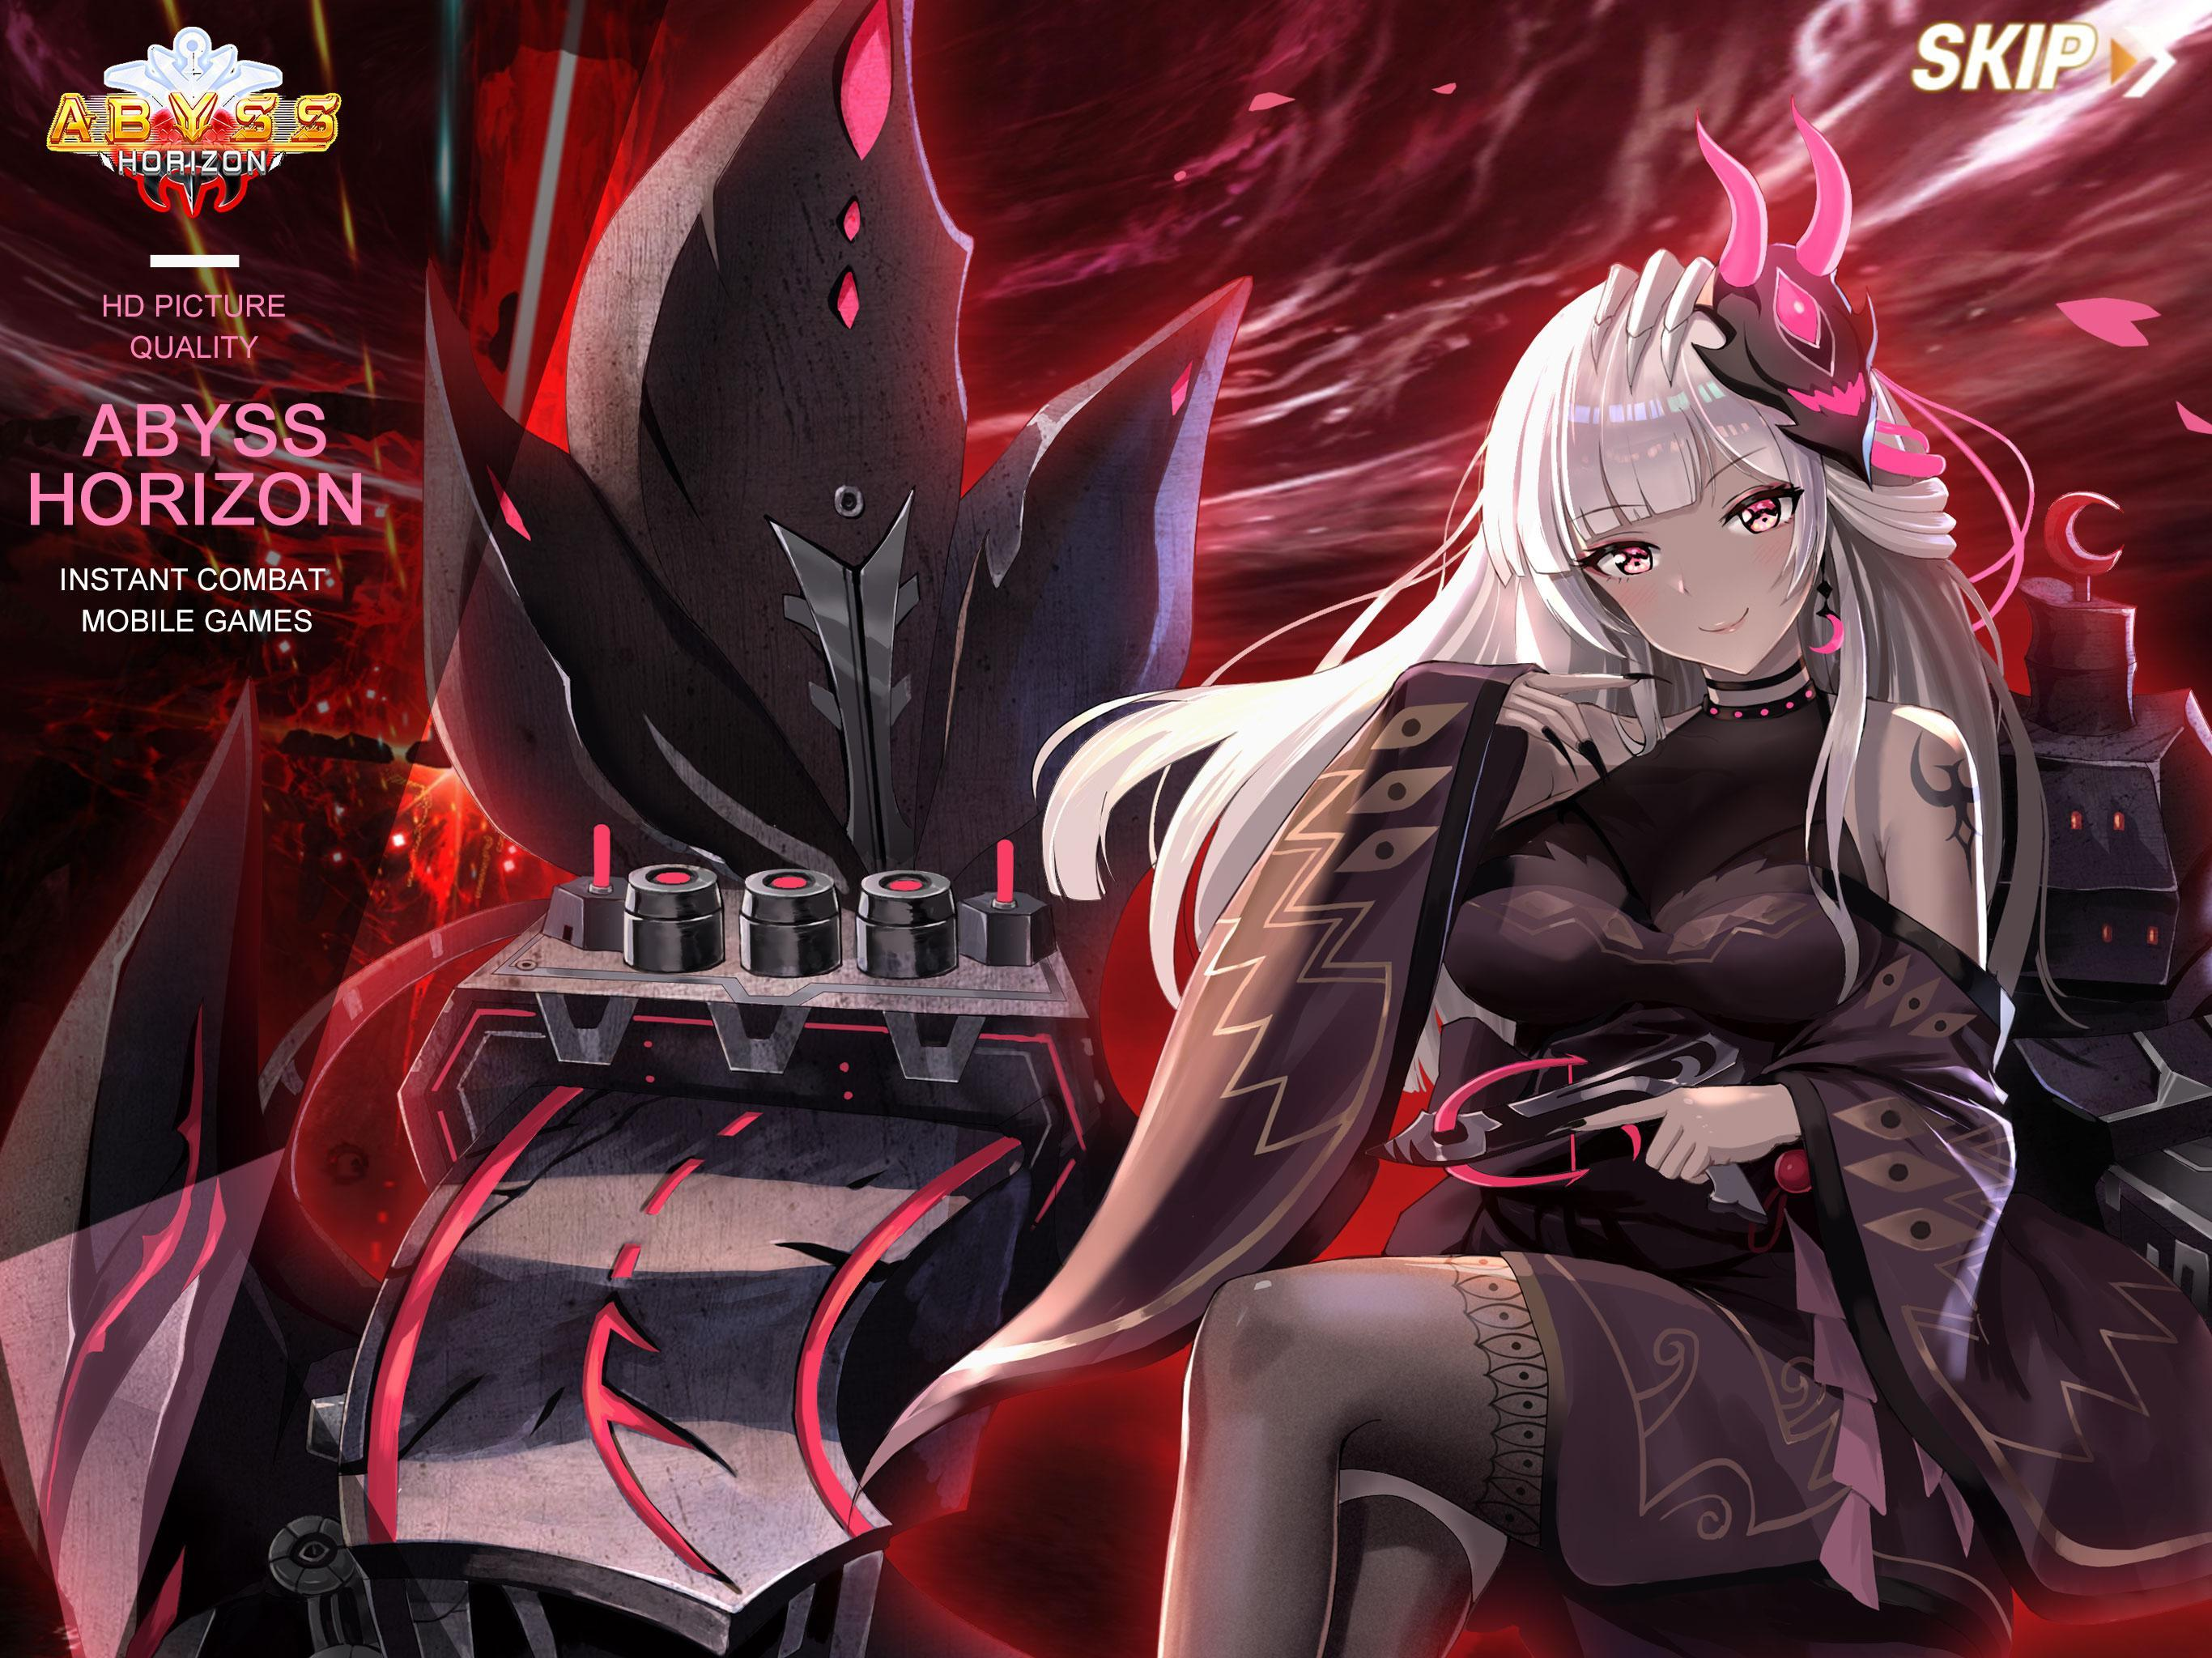 Abyss Horizon is ready to compete with Azur Lane and KanColle